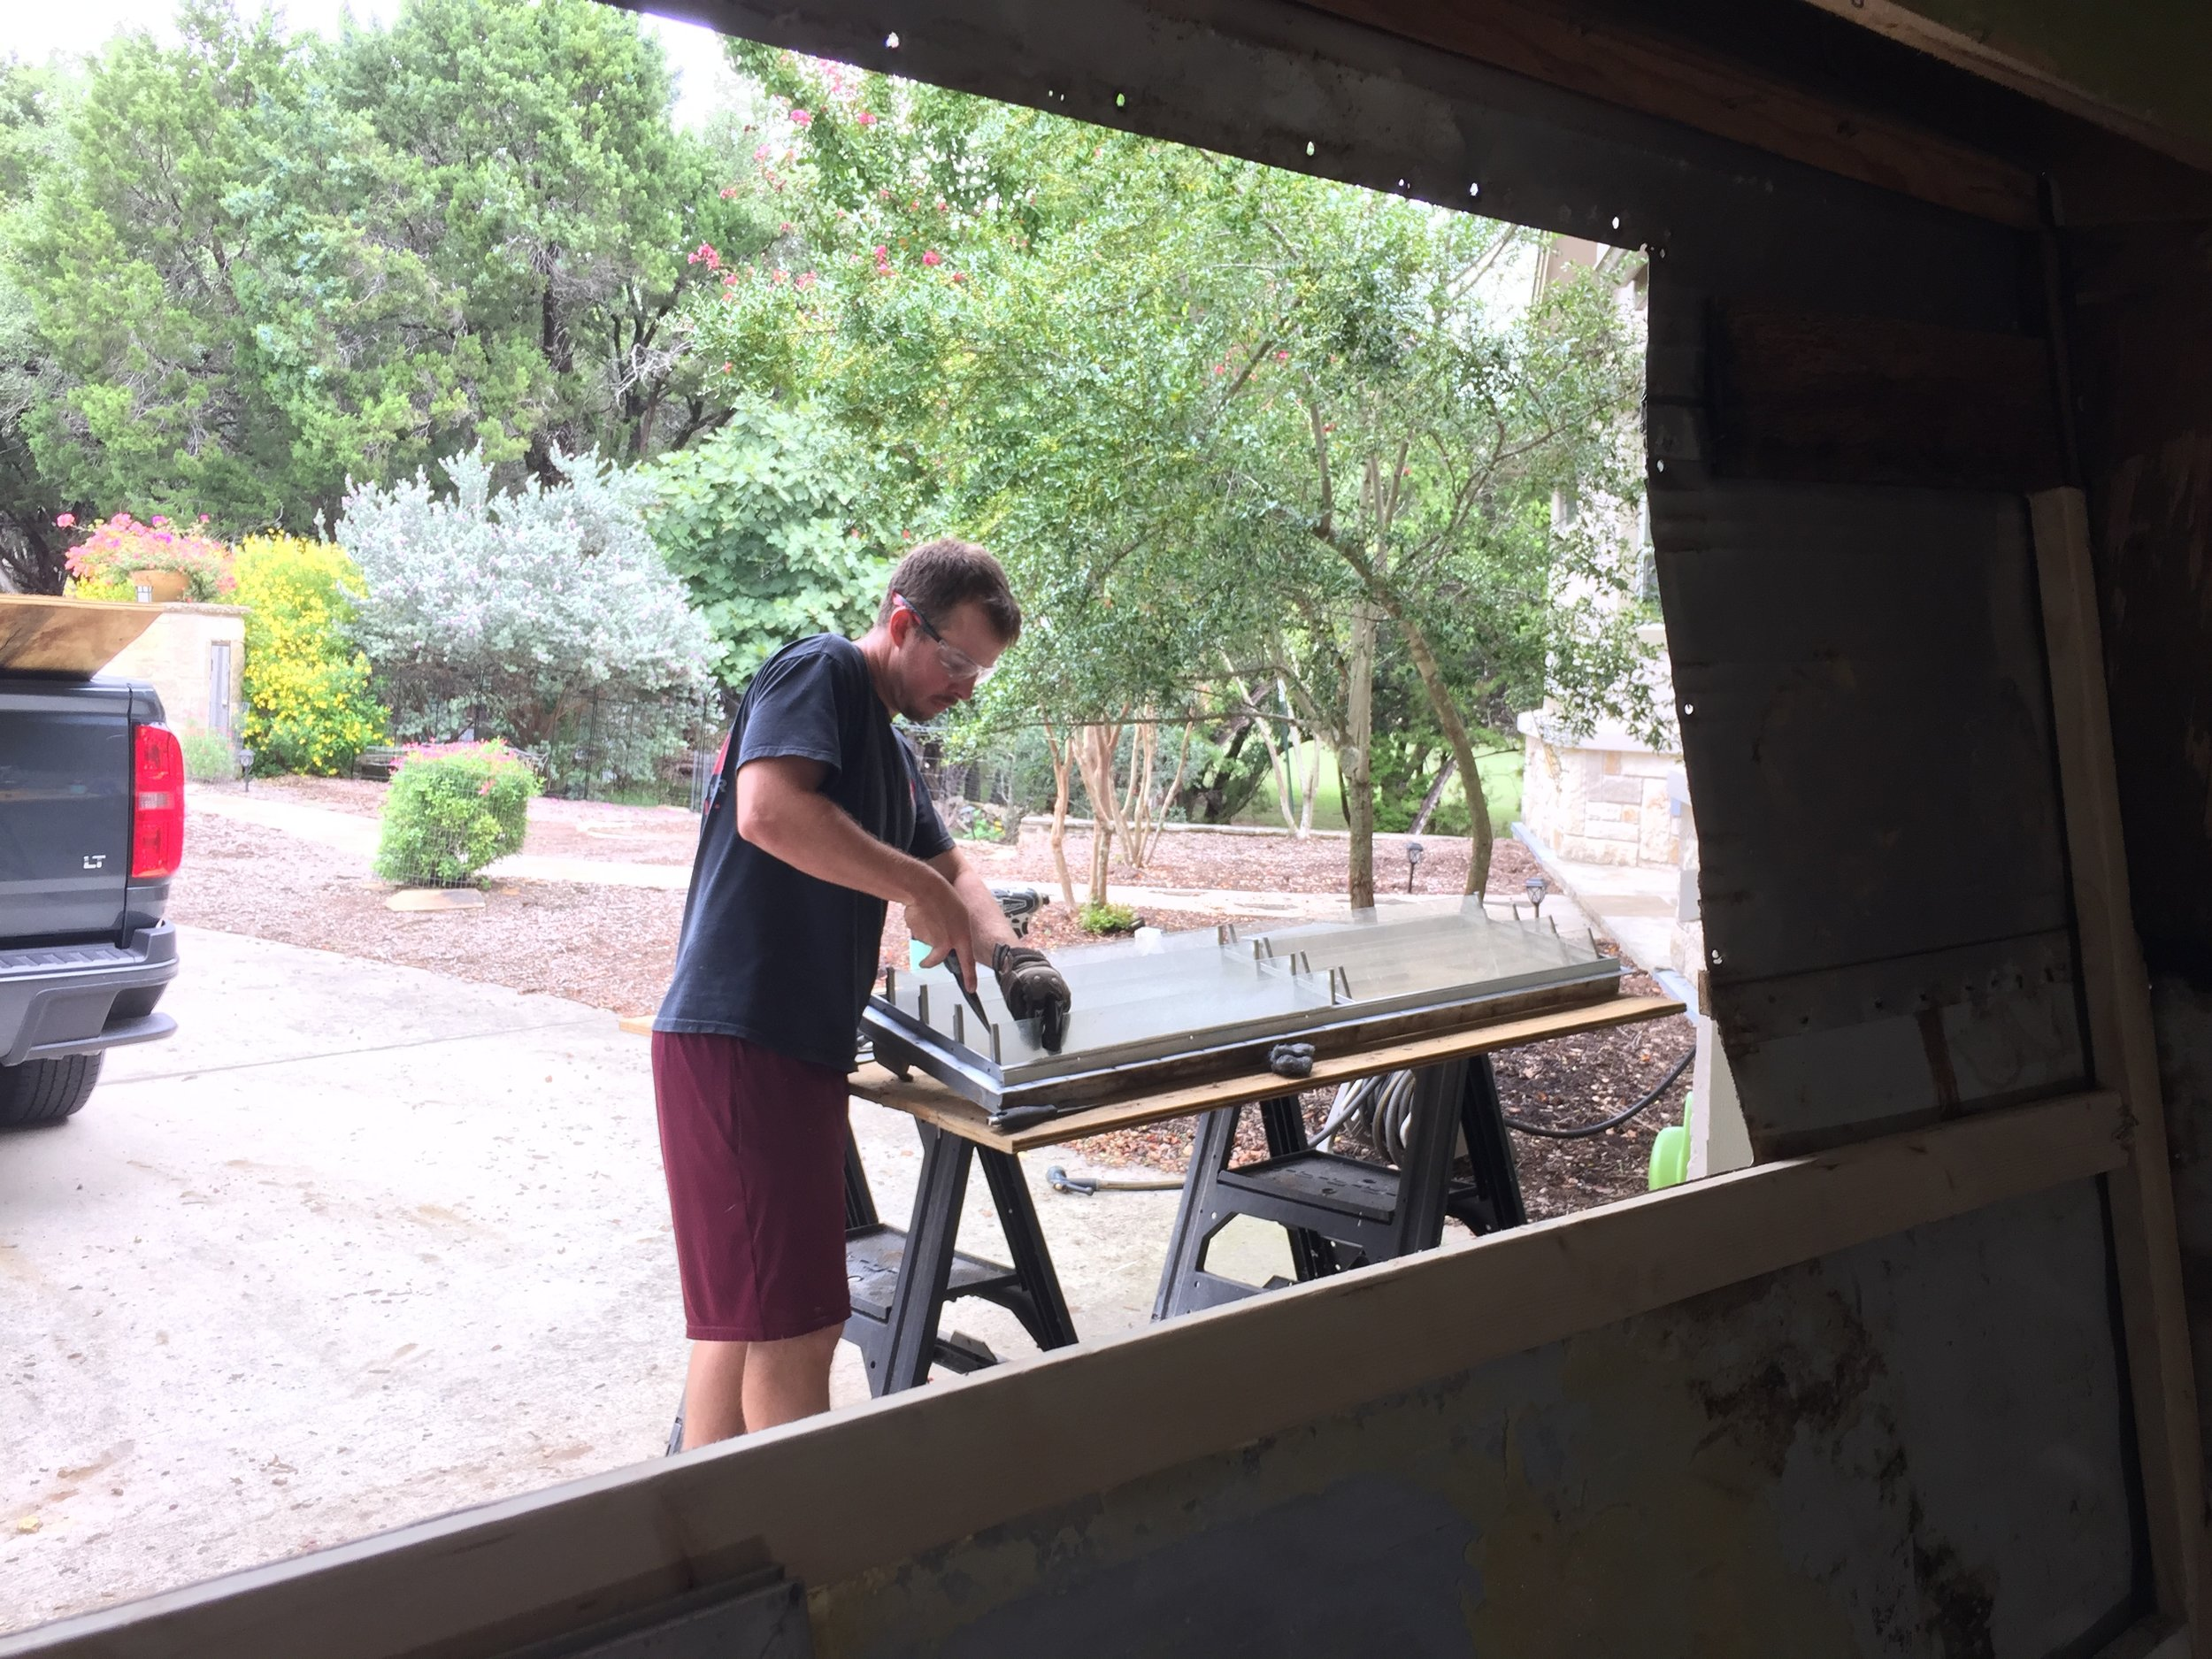 Nick replacing the jalousie glass retainer discs on the large front double window